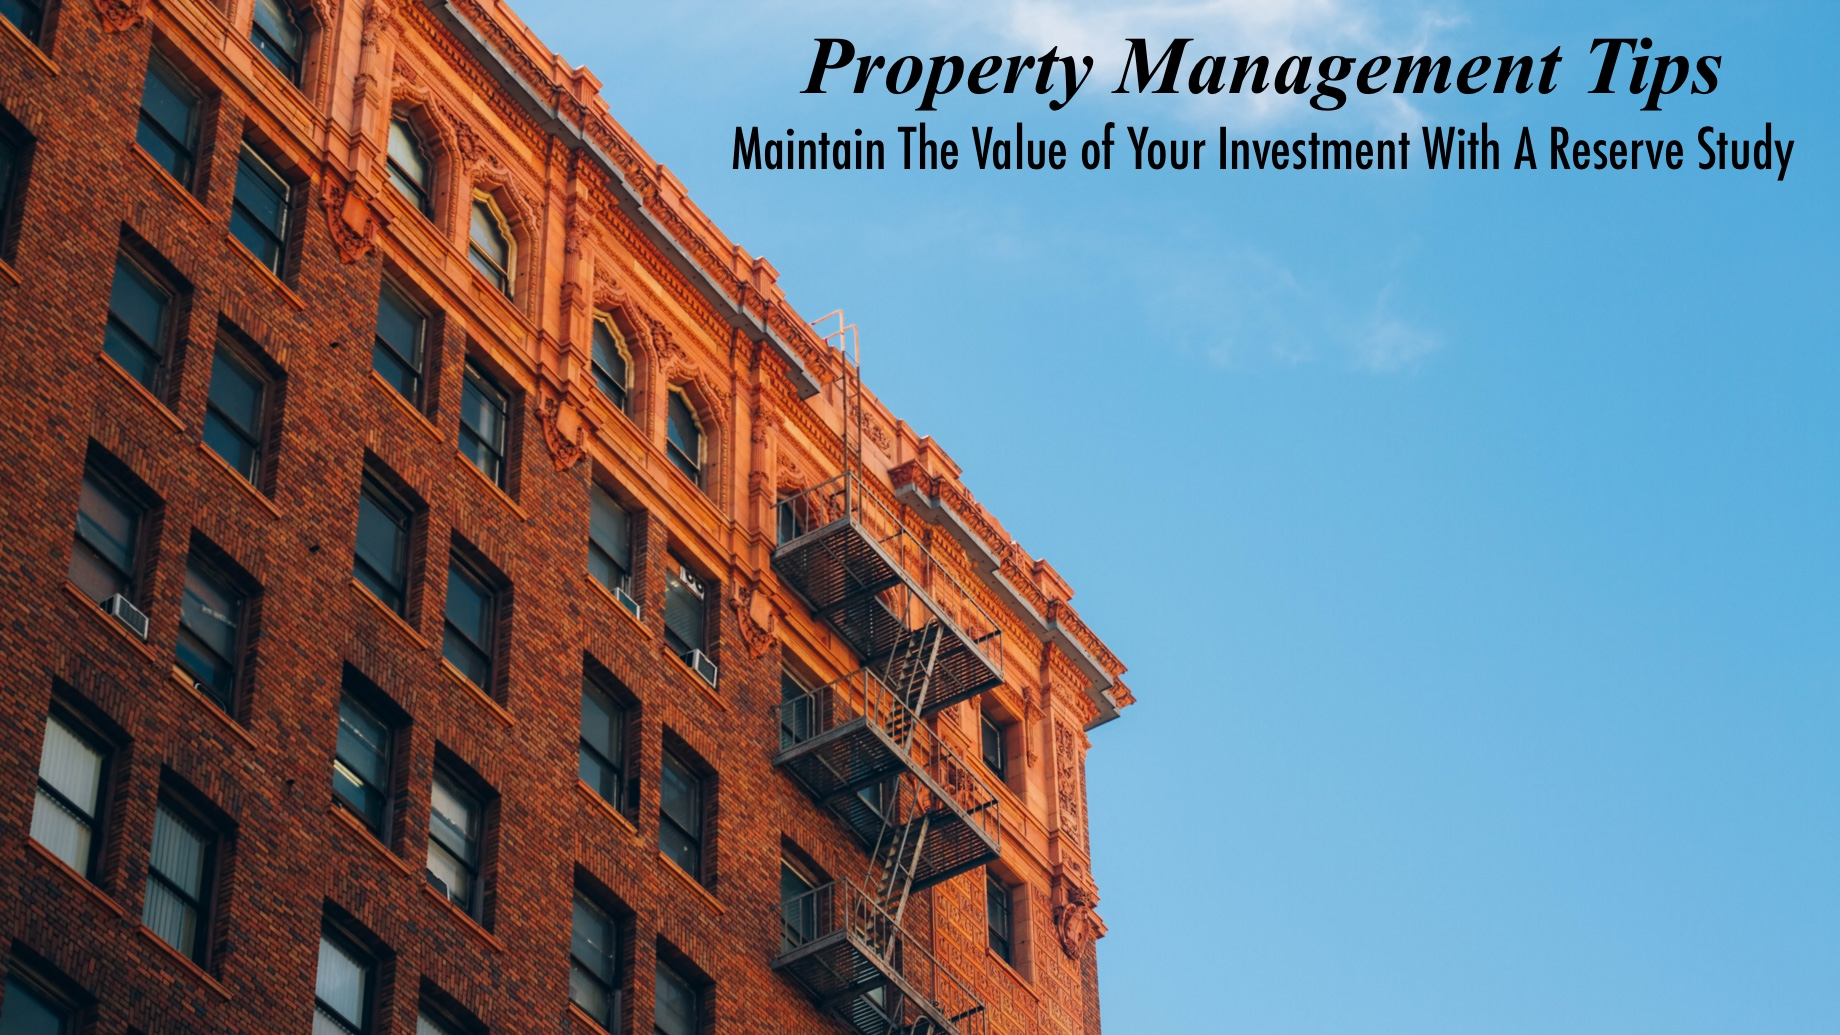 Property Management Tips - Maintain The Value of Your Investment With A Reserve Study